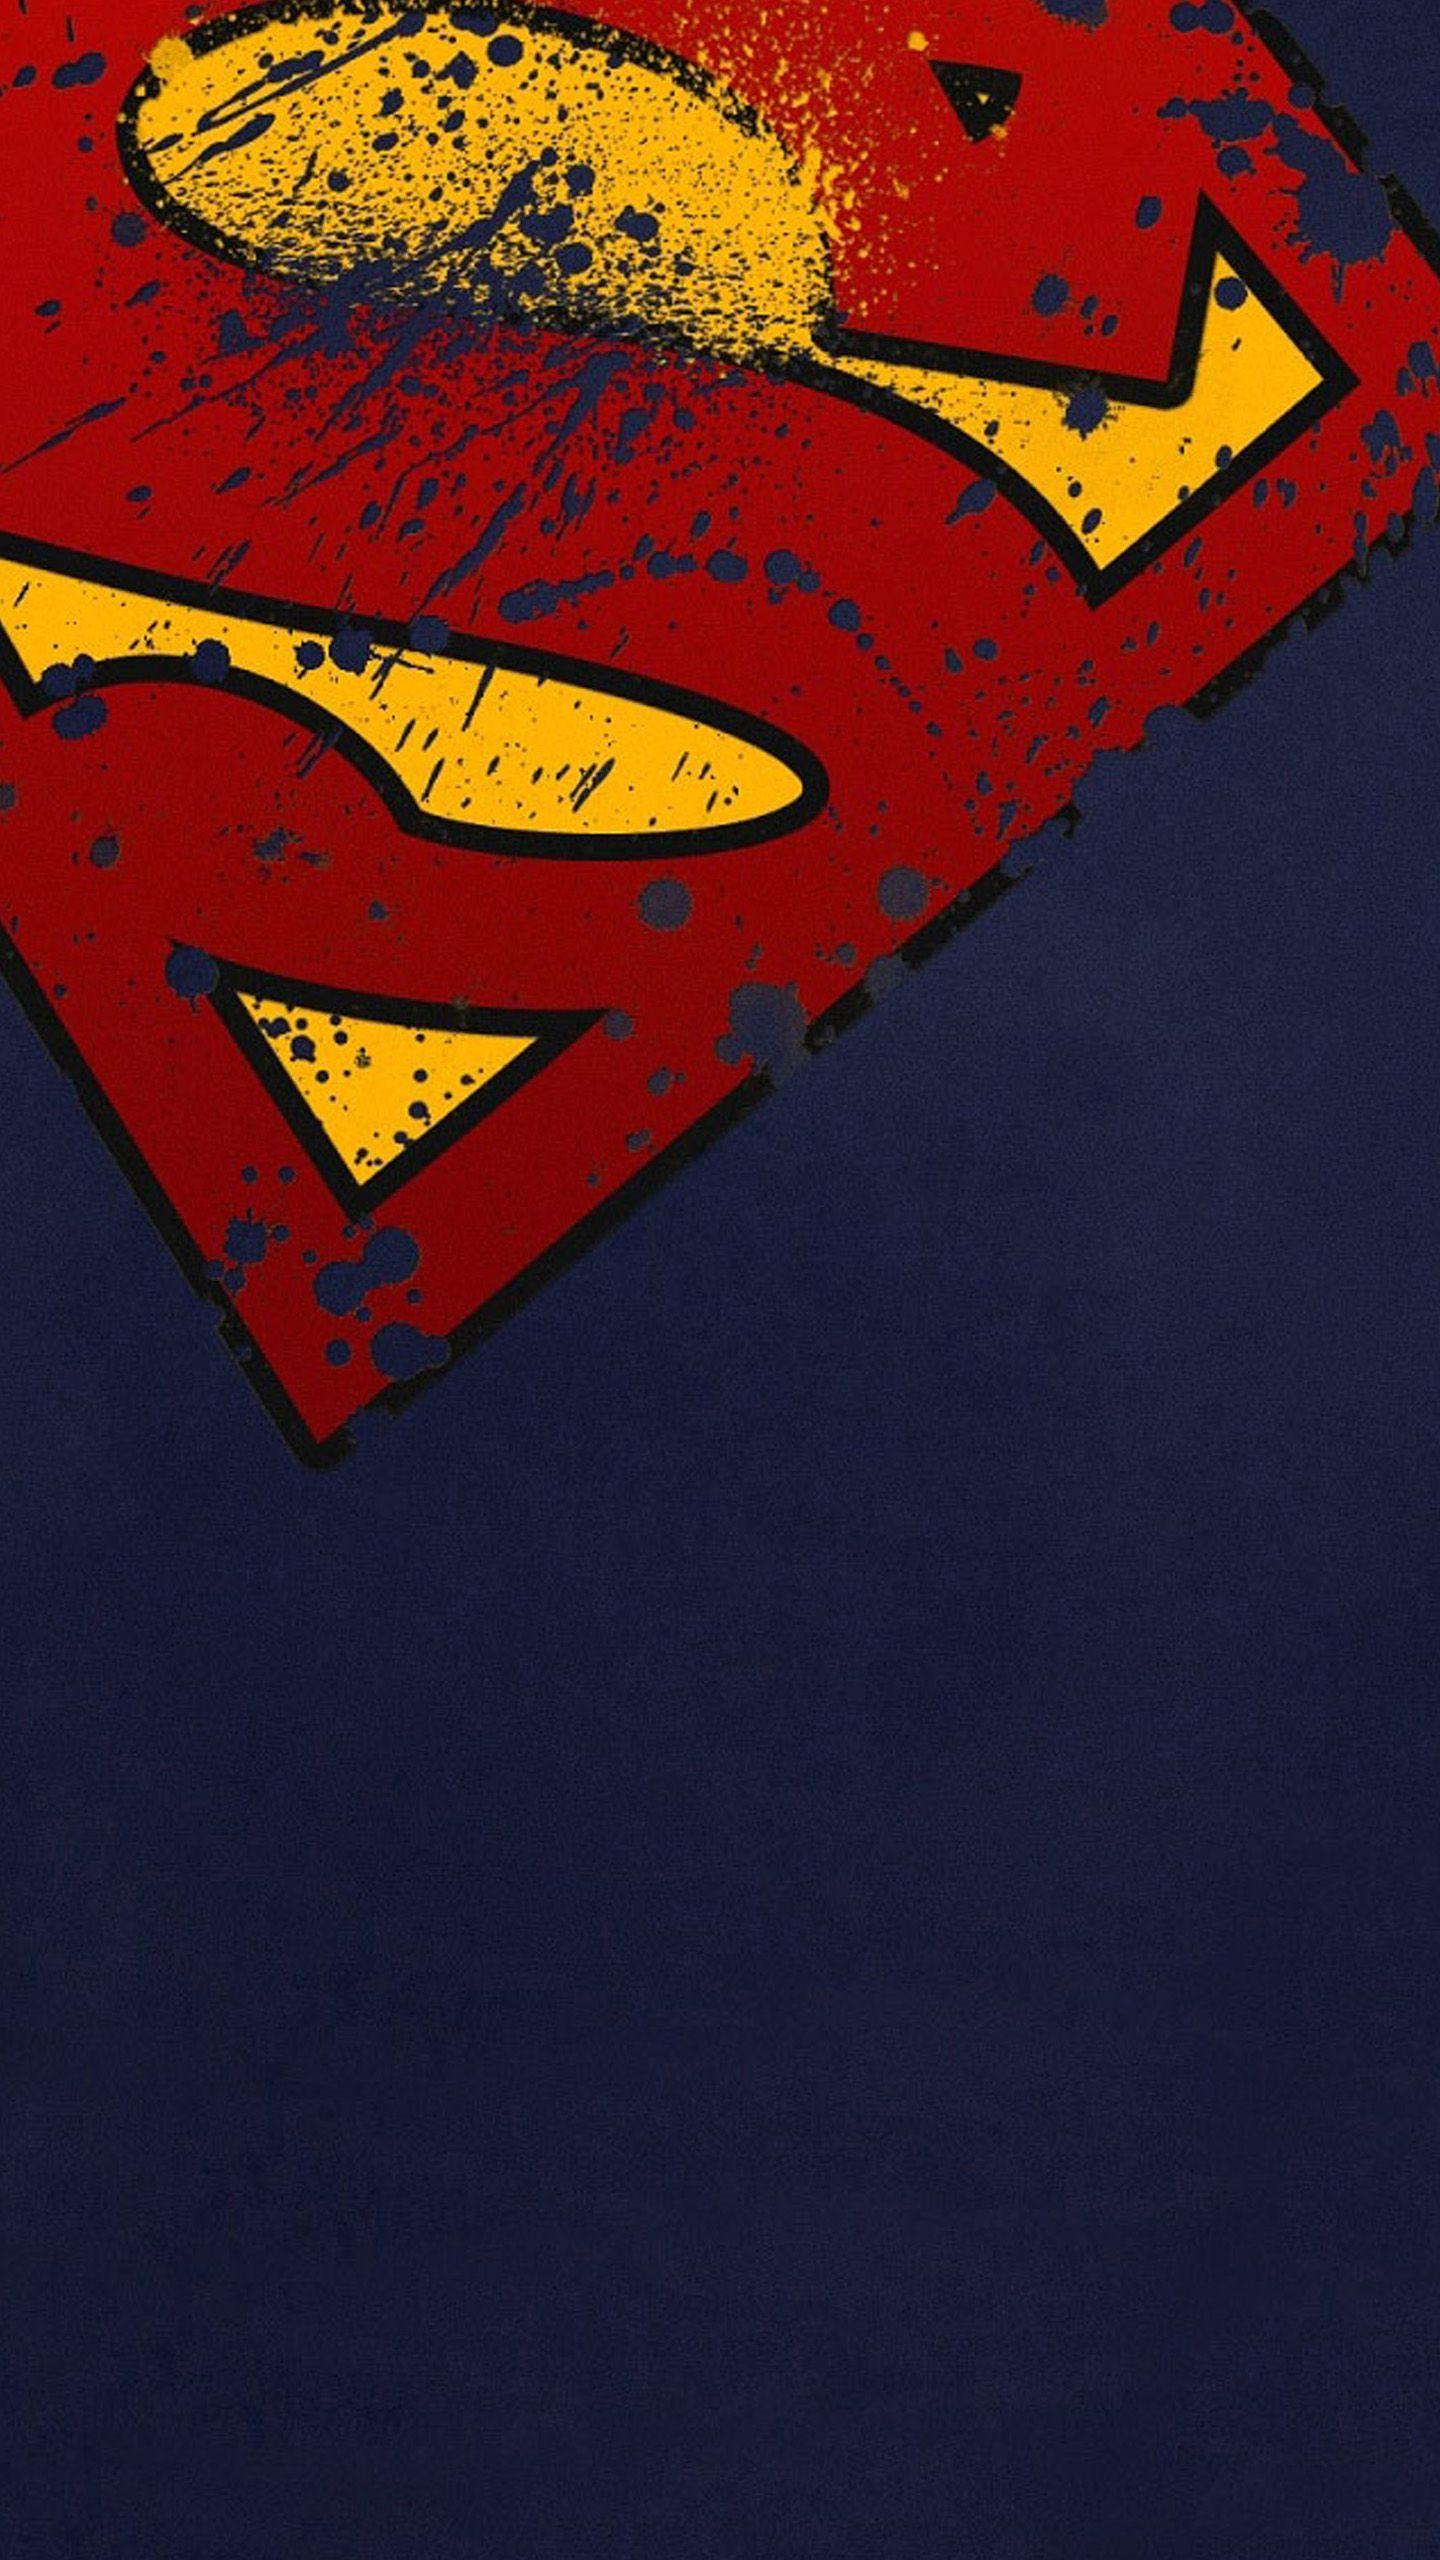 Superman Hd Wallpapers In Mobile Wallpaper Cave